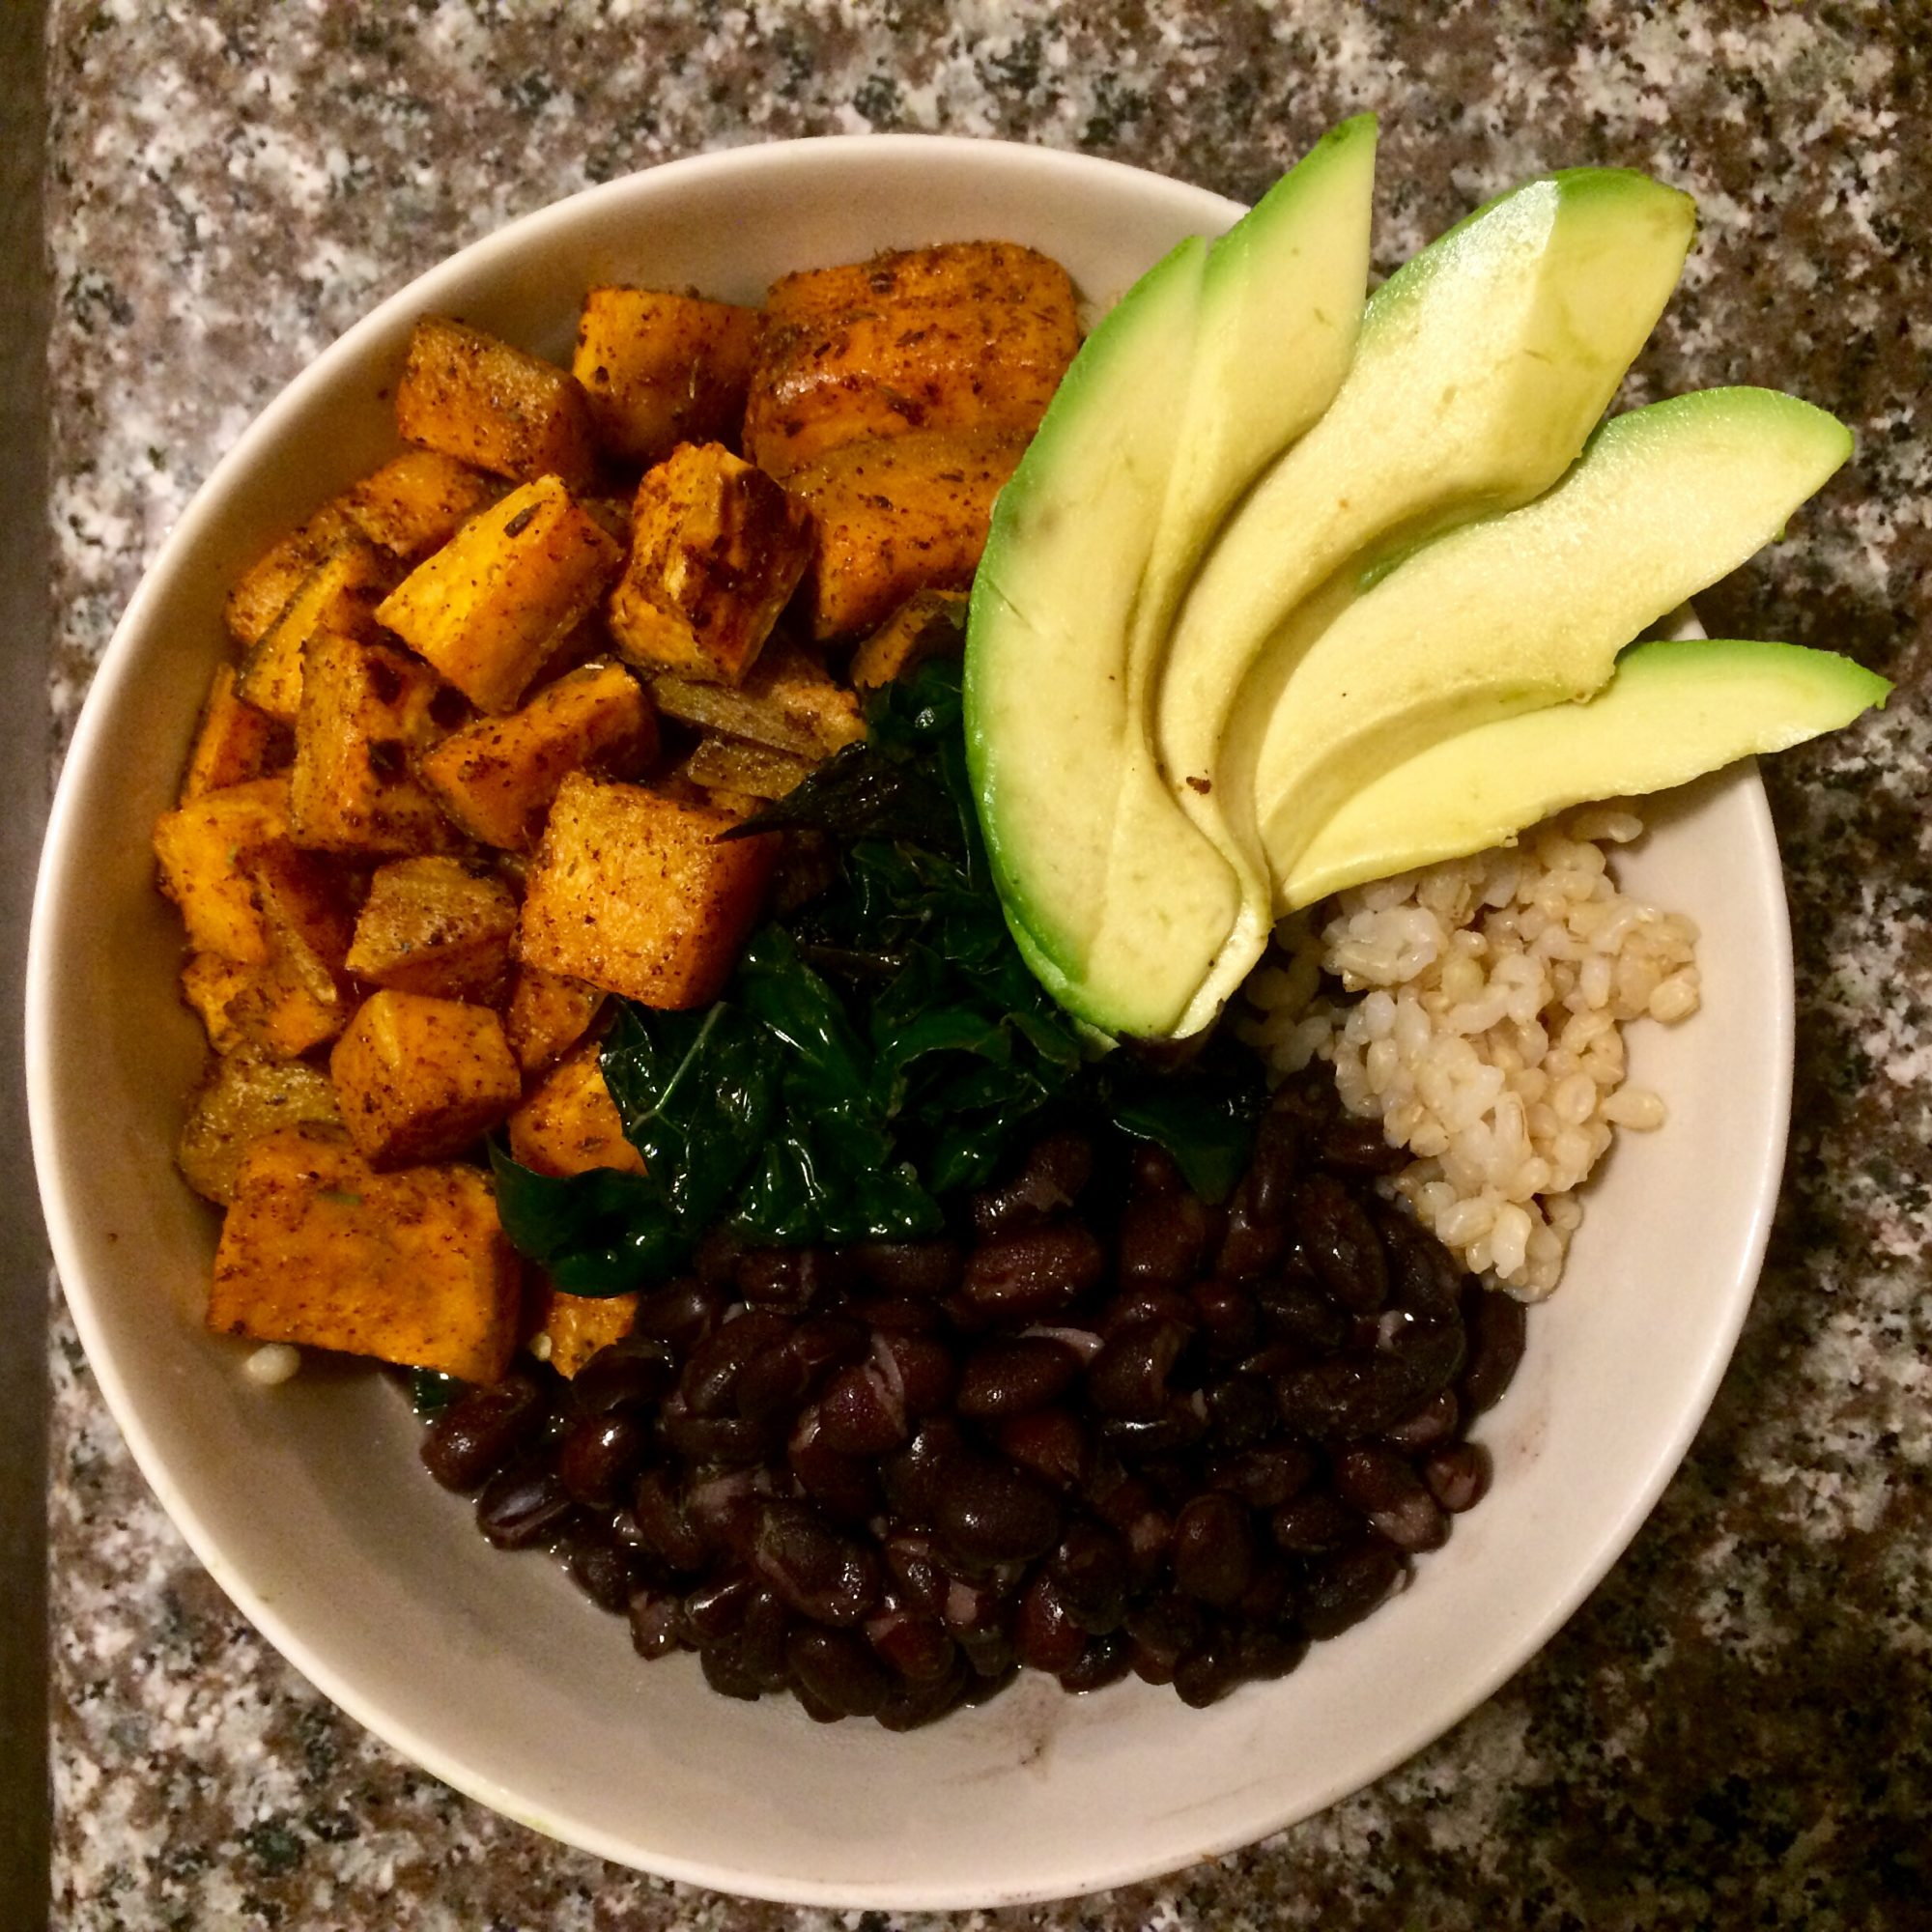 The West Seattle Sweet Potato and Kale Bowl